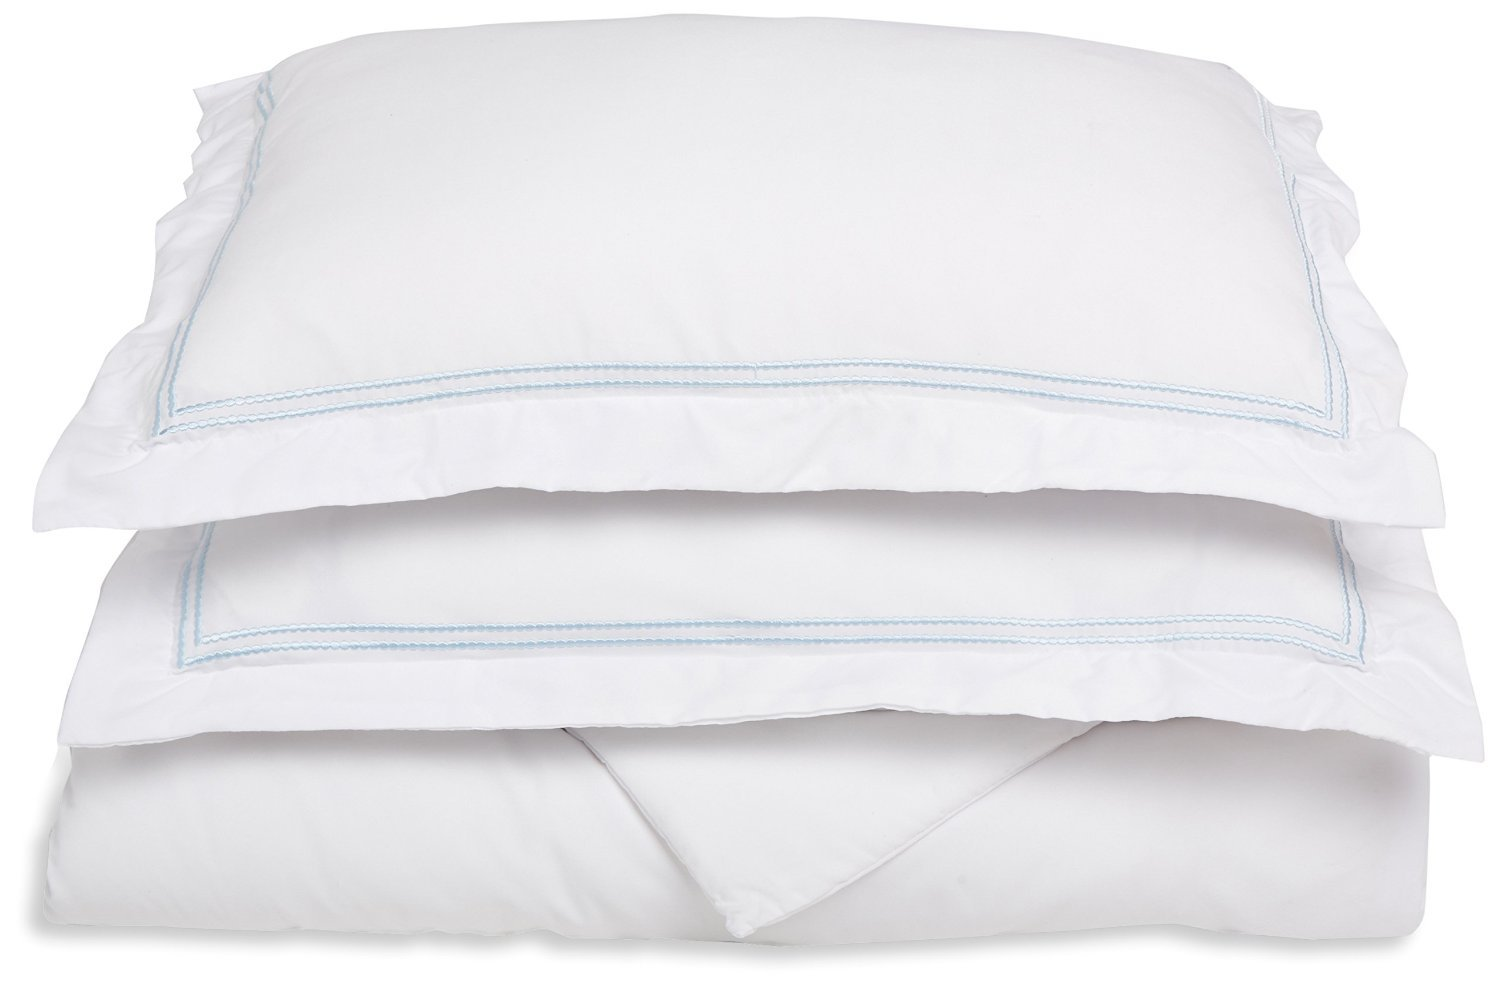 Super Soft, Light Weight, 100% Brushed Microfiber, King/California King, Wrinkle Resistant, White Duvet Cover with Blue 2-Line Embroidered Pillowshams in Gift Box